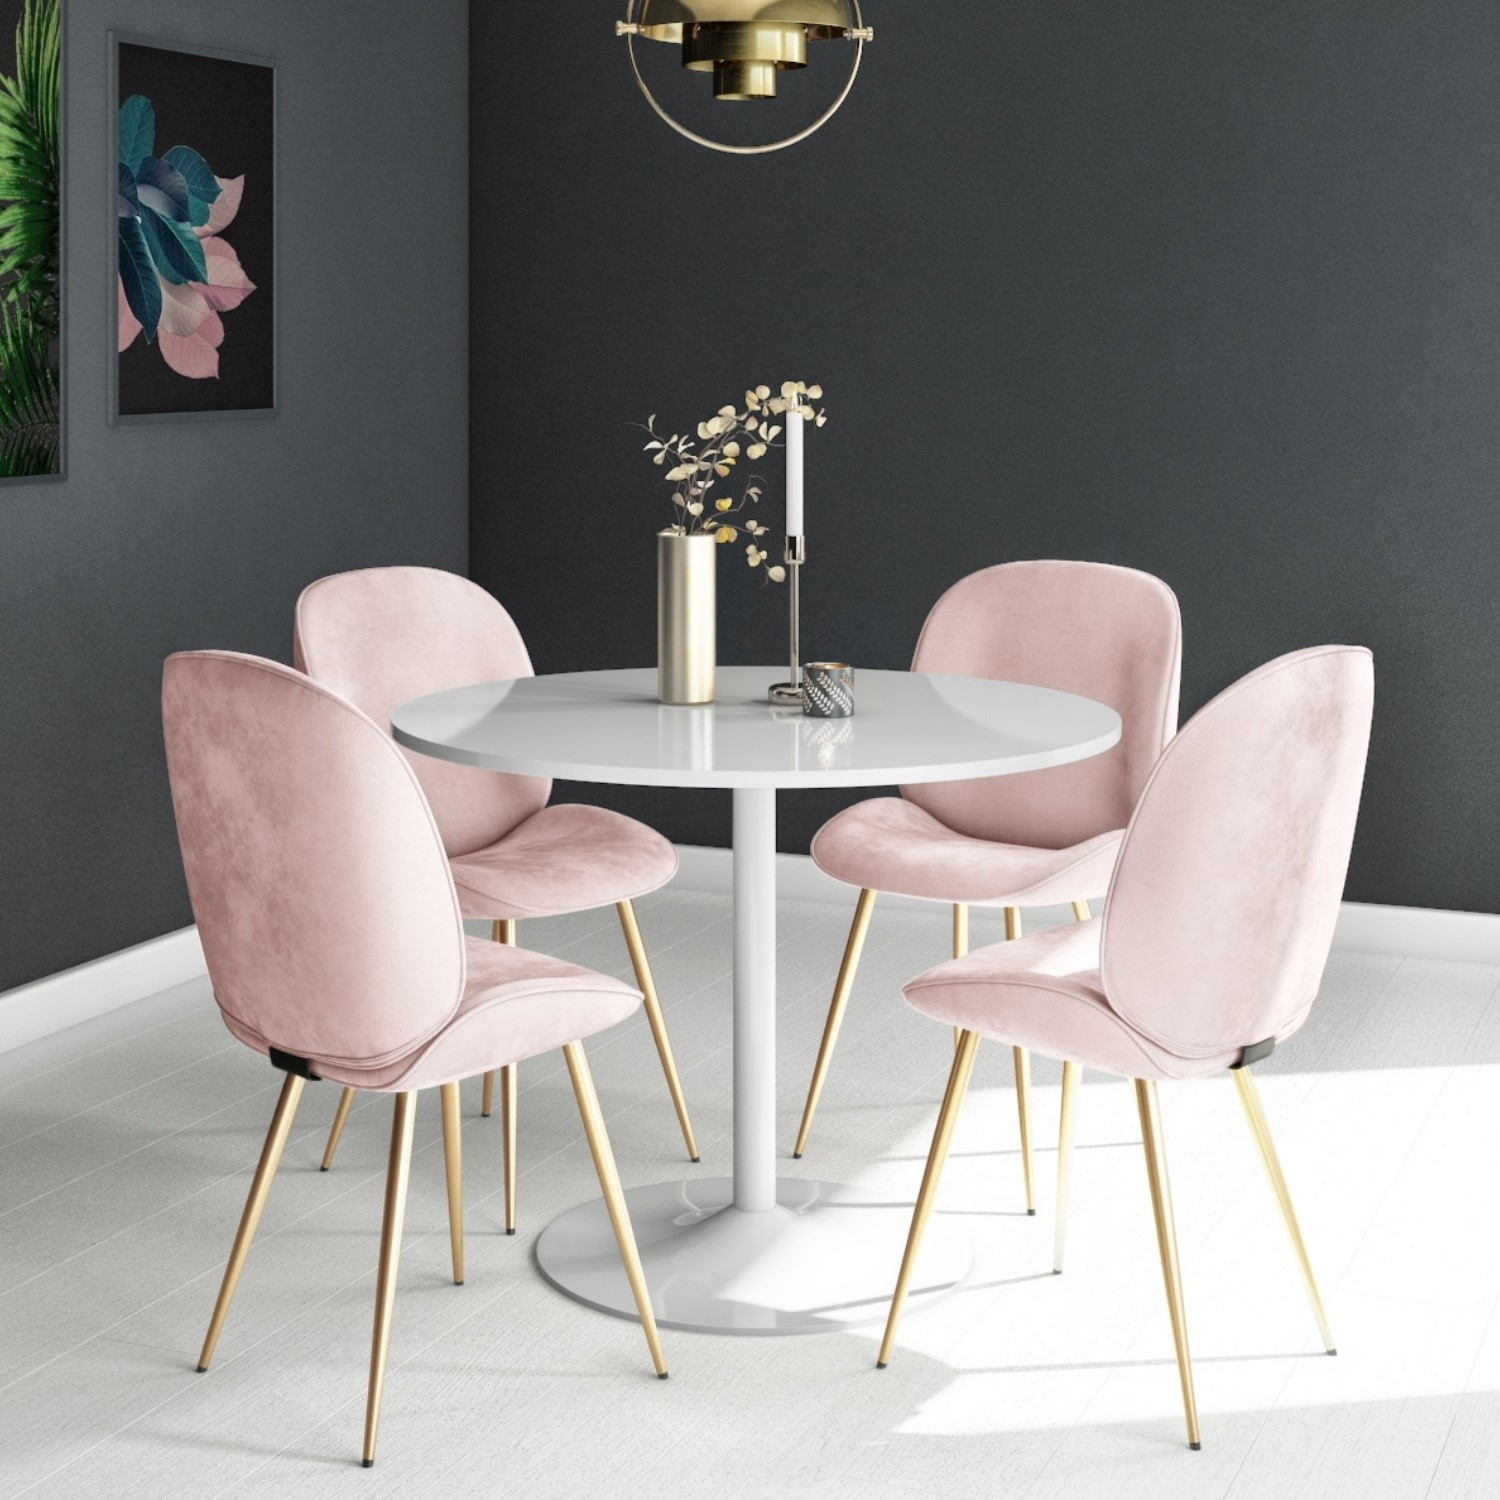 Picture of: Jenna White Round Table 4 Chairs In Pink Velvet With Gold Legs Furniture123